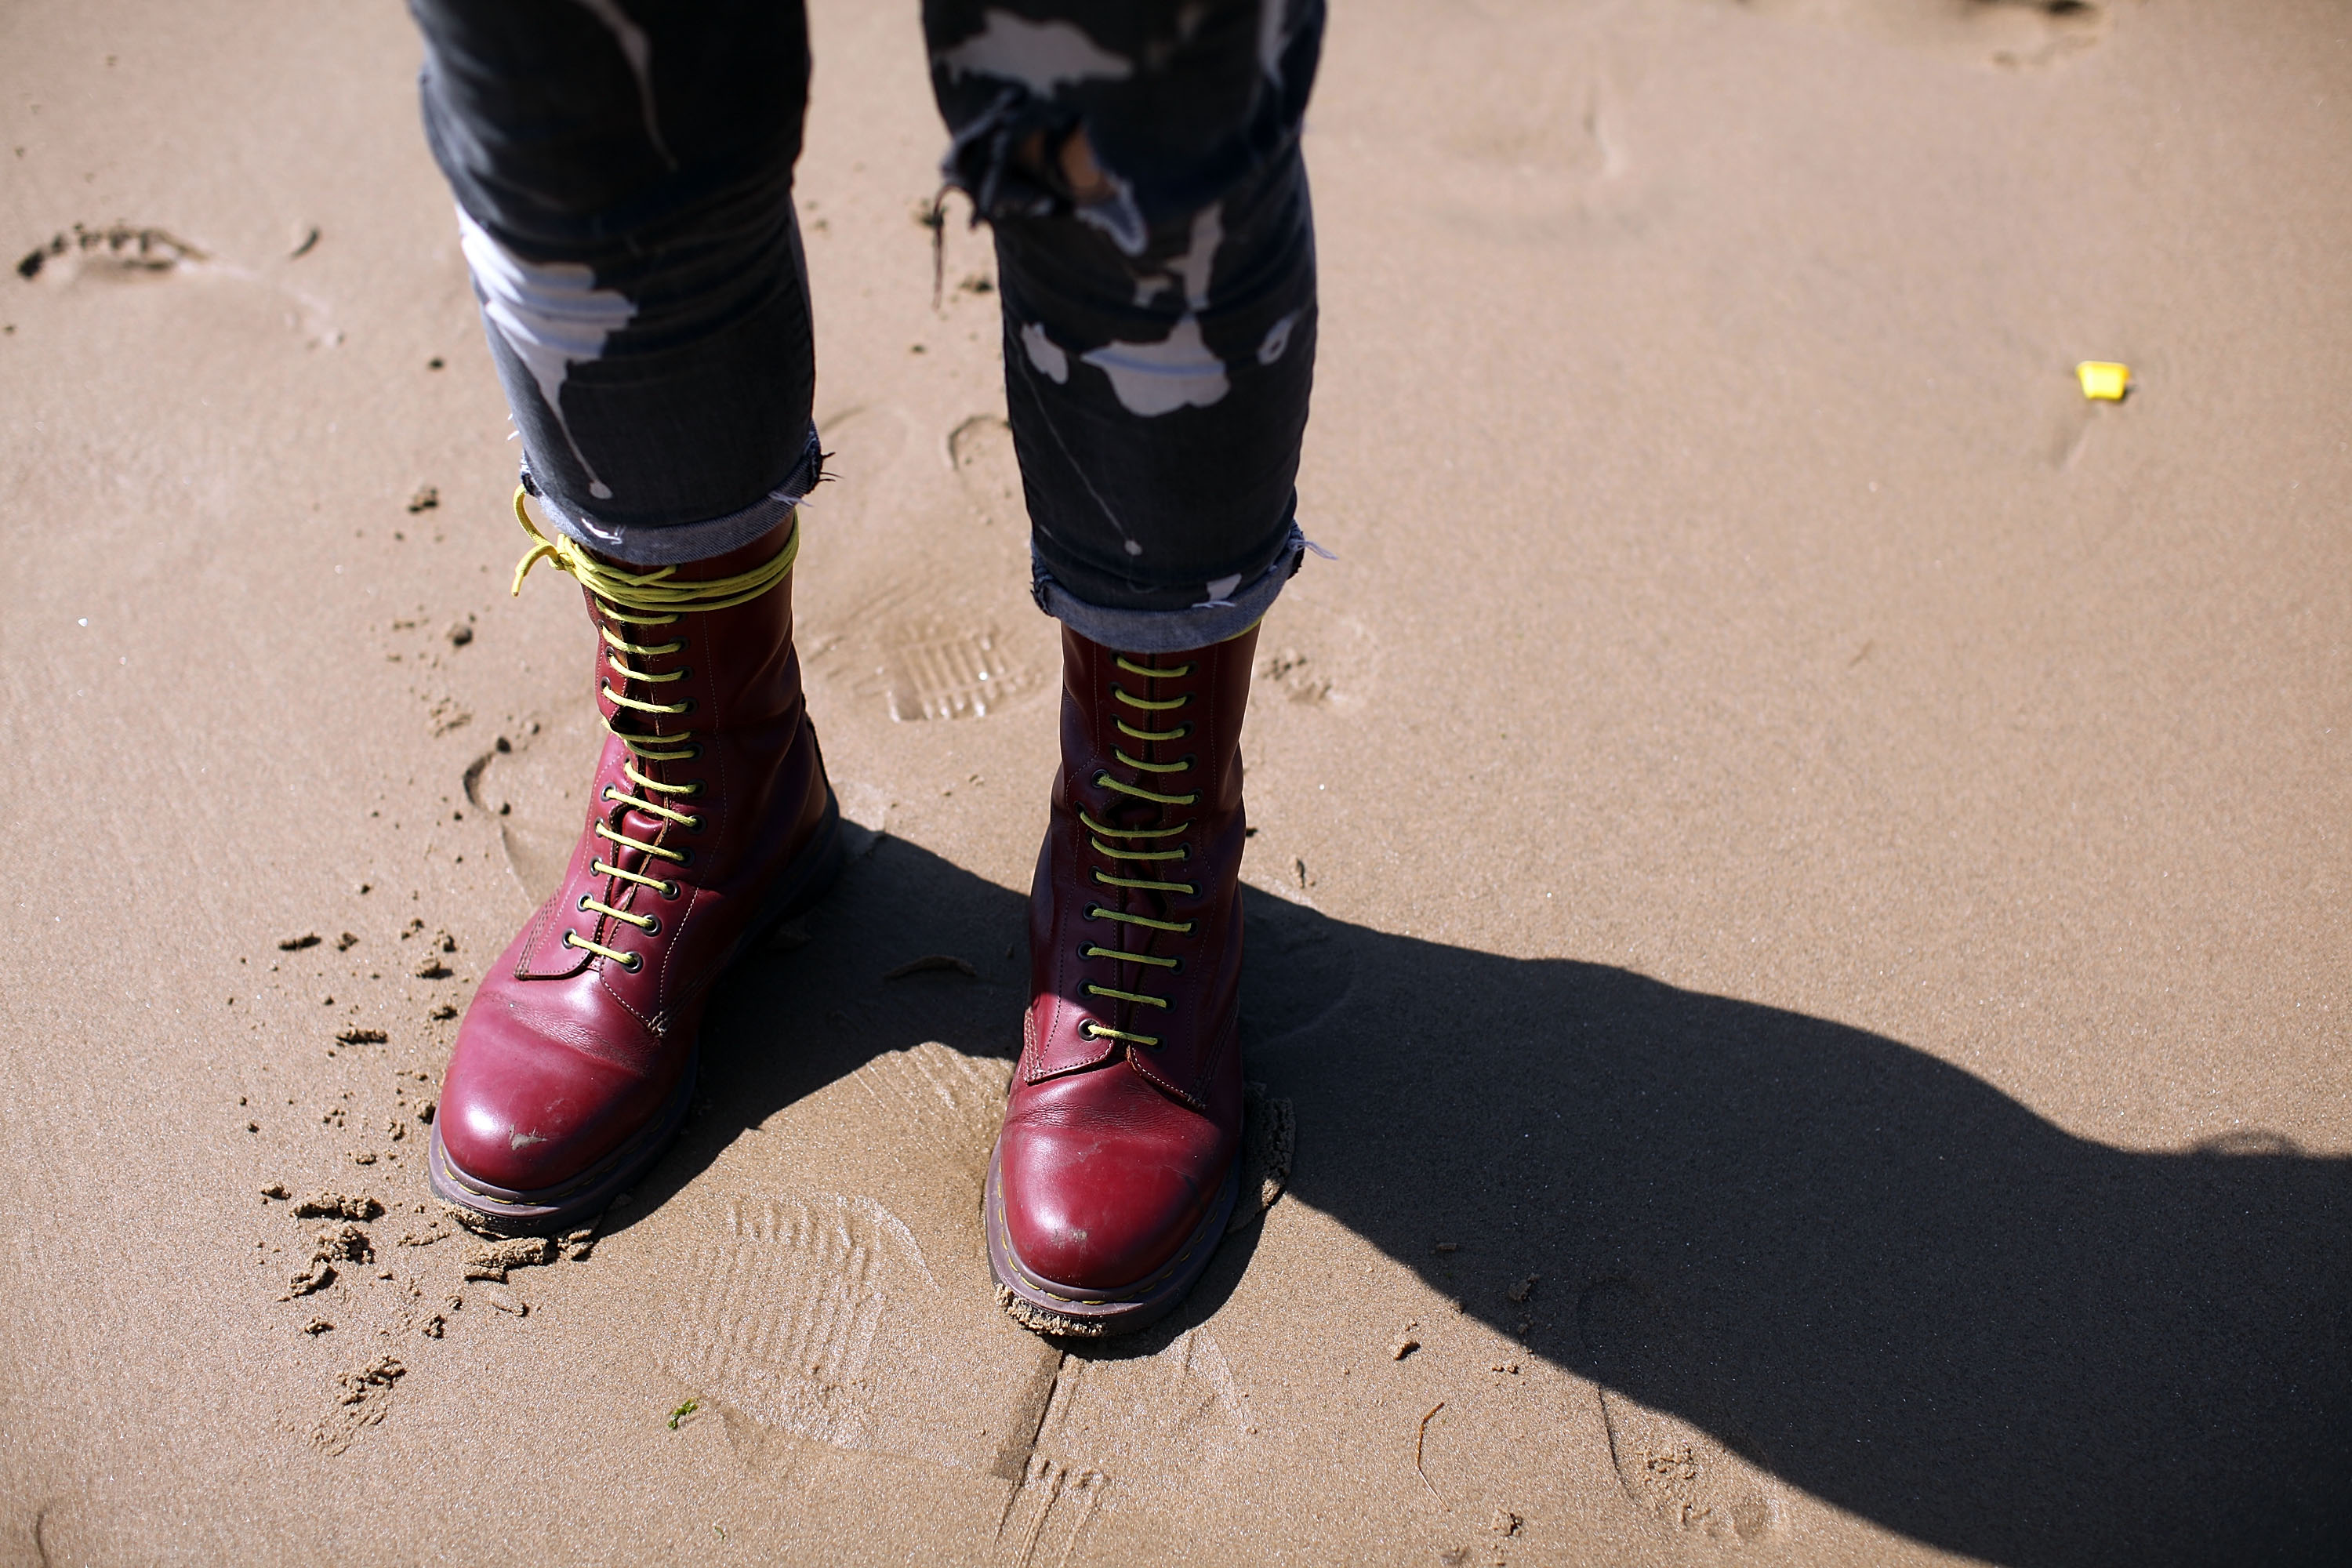 cc152352ffe The History Of Dr. Martens And My Lifelong Love Affair With The ...